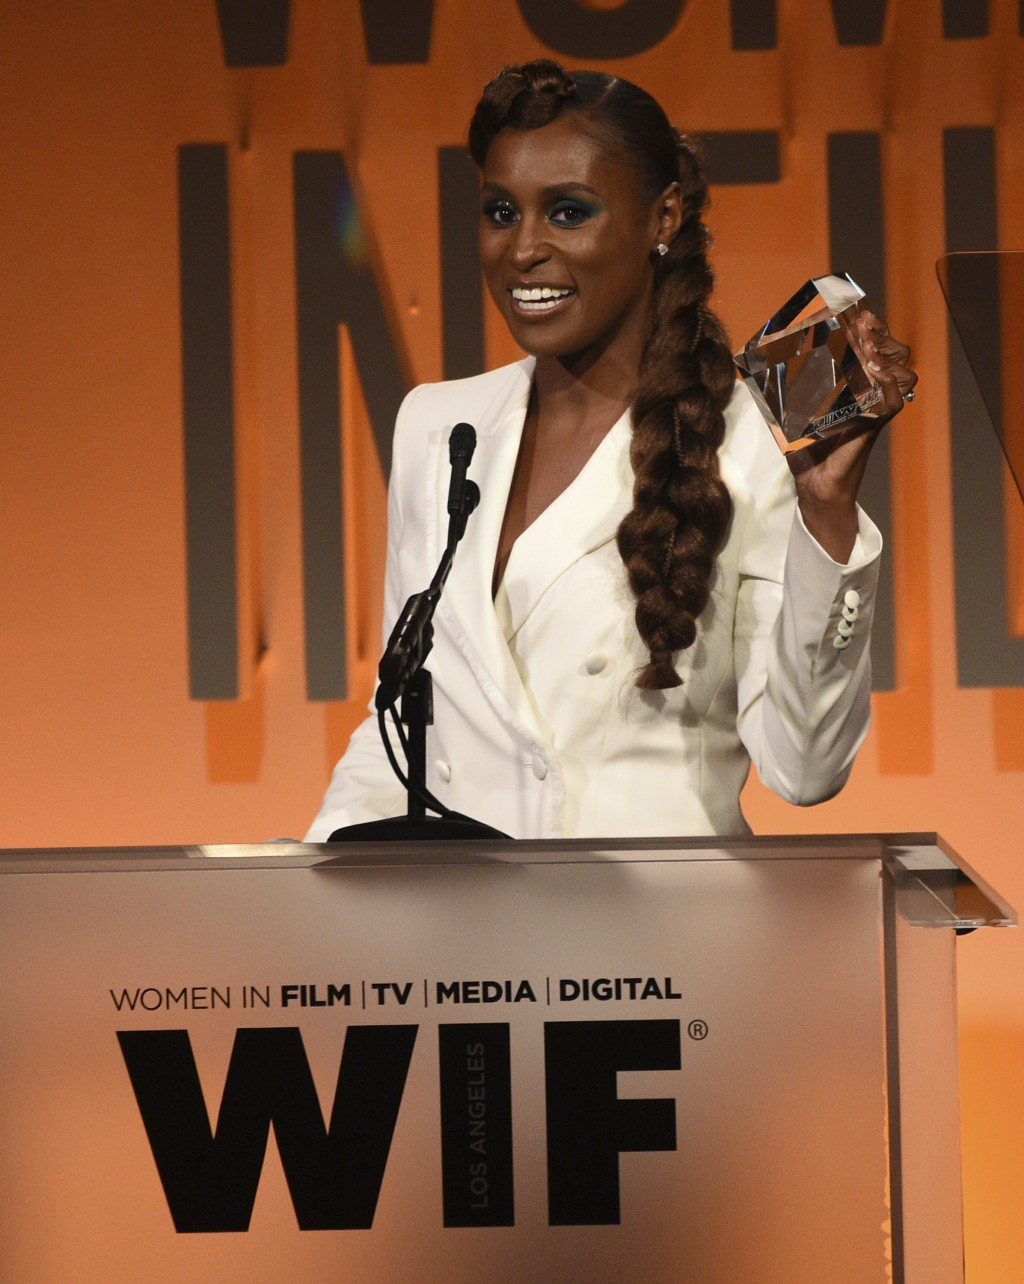 Issa Rae accepts the women in film emerging entrepreneur award at the Women in Film Annual Gala on Wednesday, June 12, 2019, at the Beverly Hilton Hot